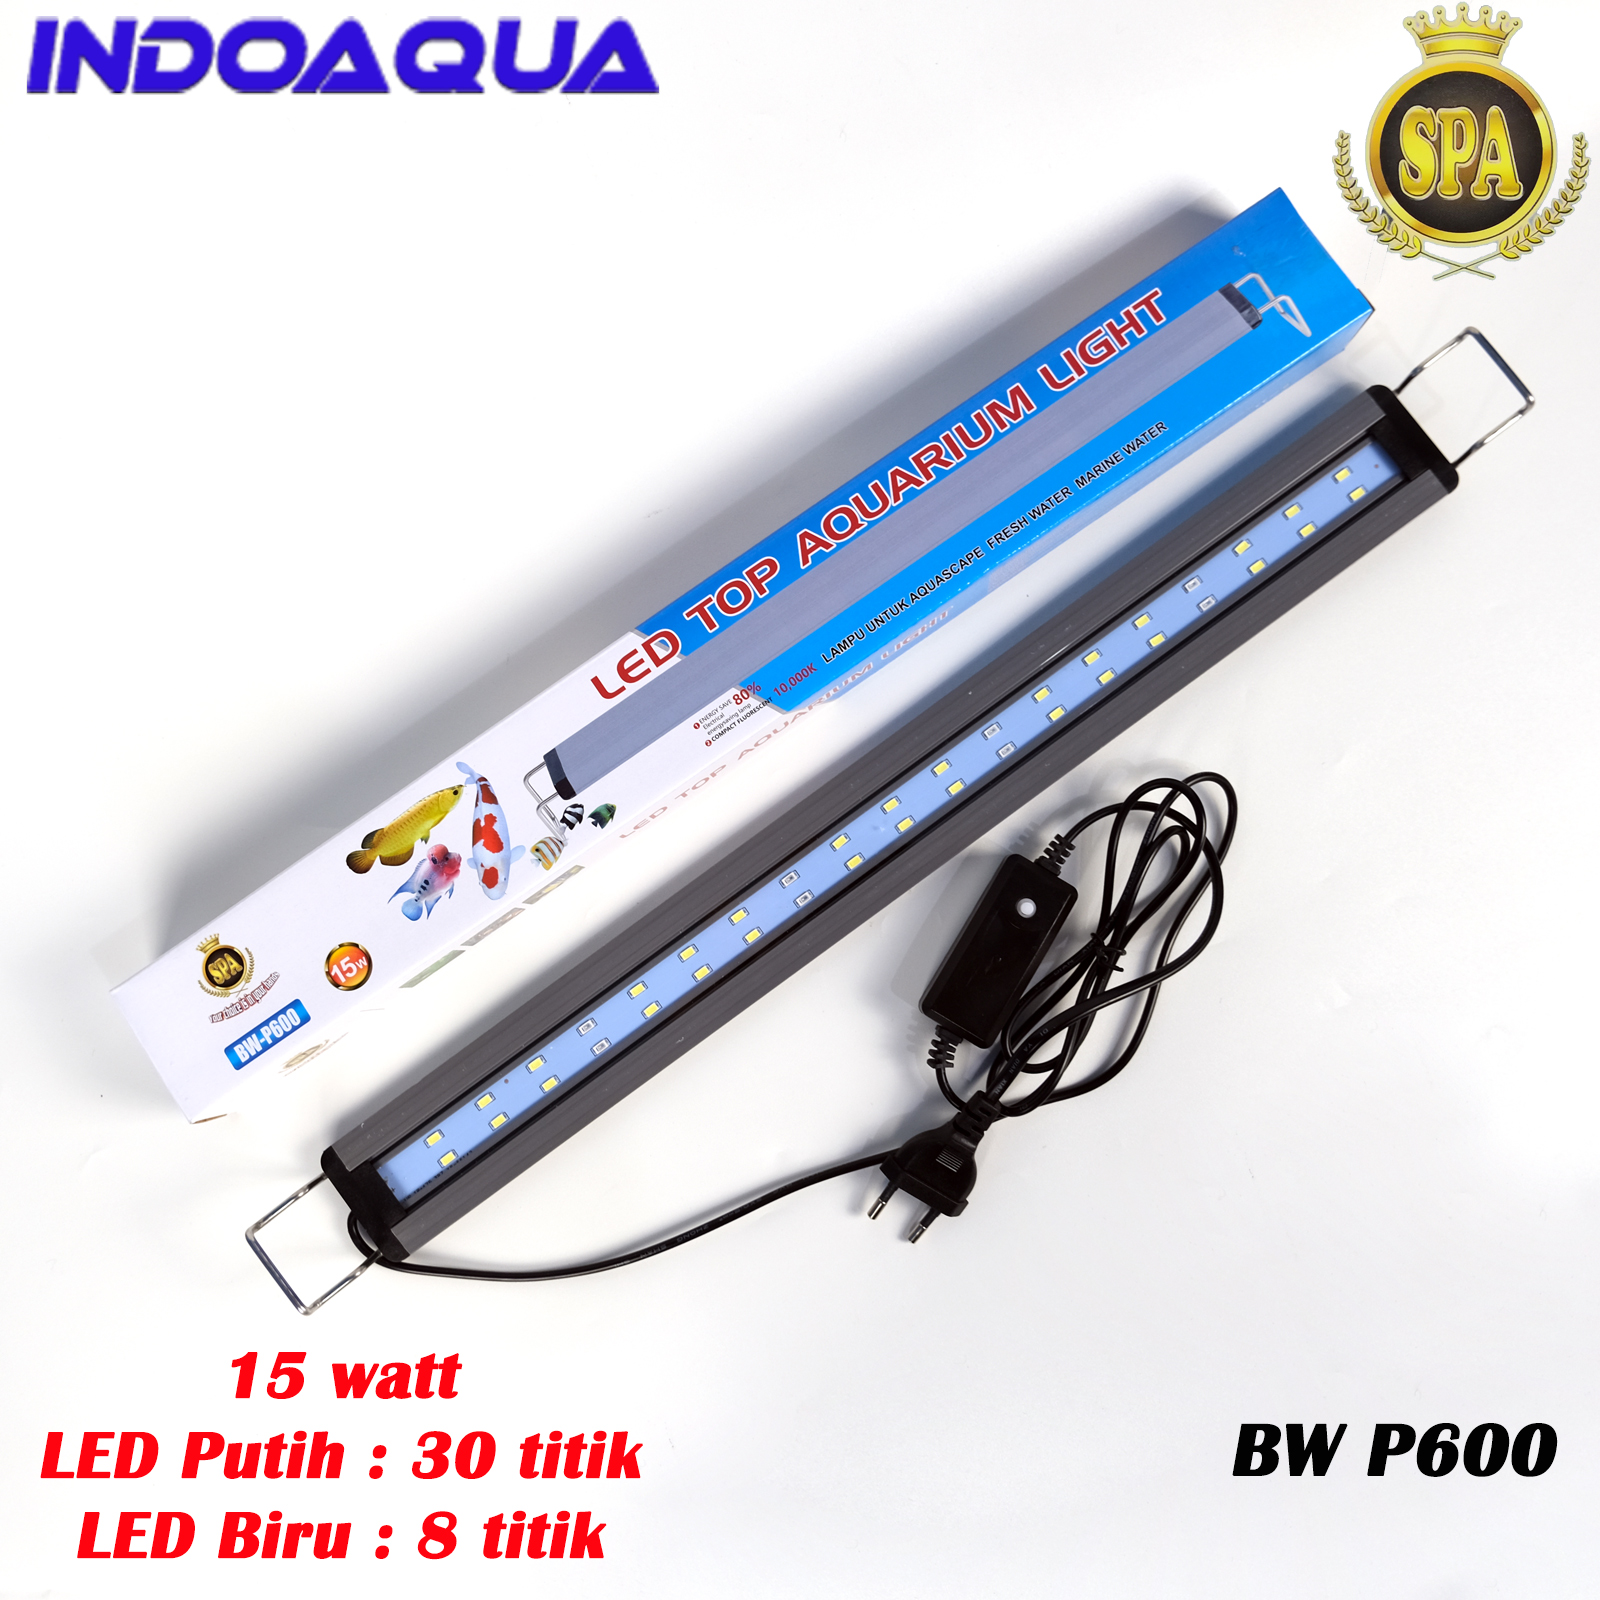 INDOAQUA - Lampu LED Aquarium For Tank 50 60 cm Lampu Aquascape Murah Lampu Aquarium Biru Putih